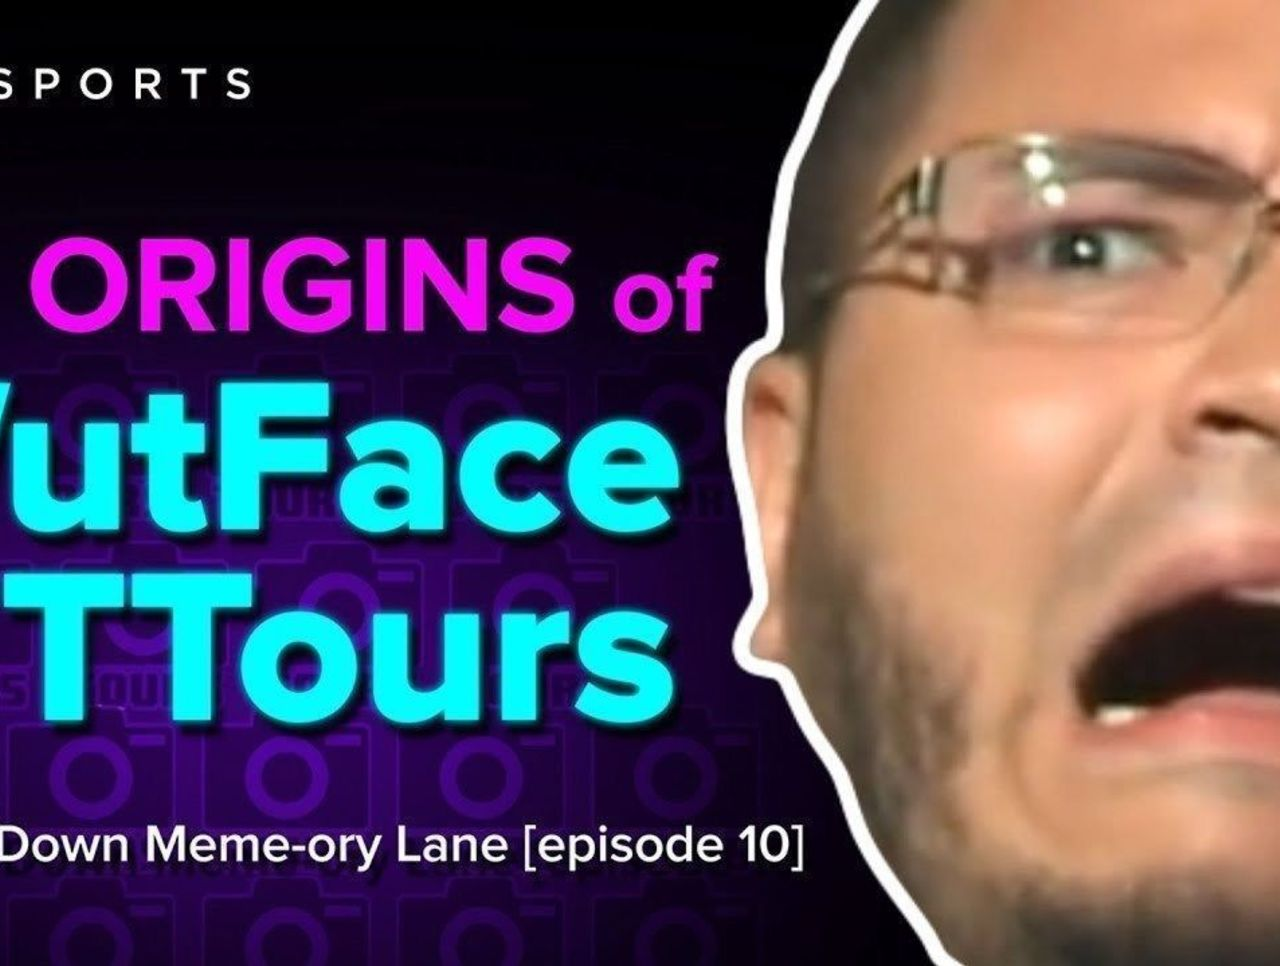 When twitch users fight back the origins of wutface and ttours a trip down meme ory lane thescore esports